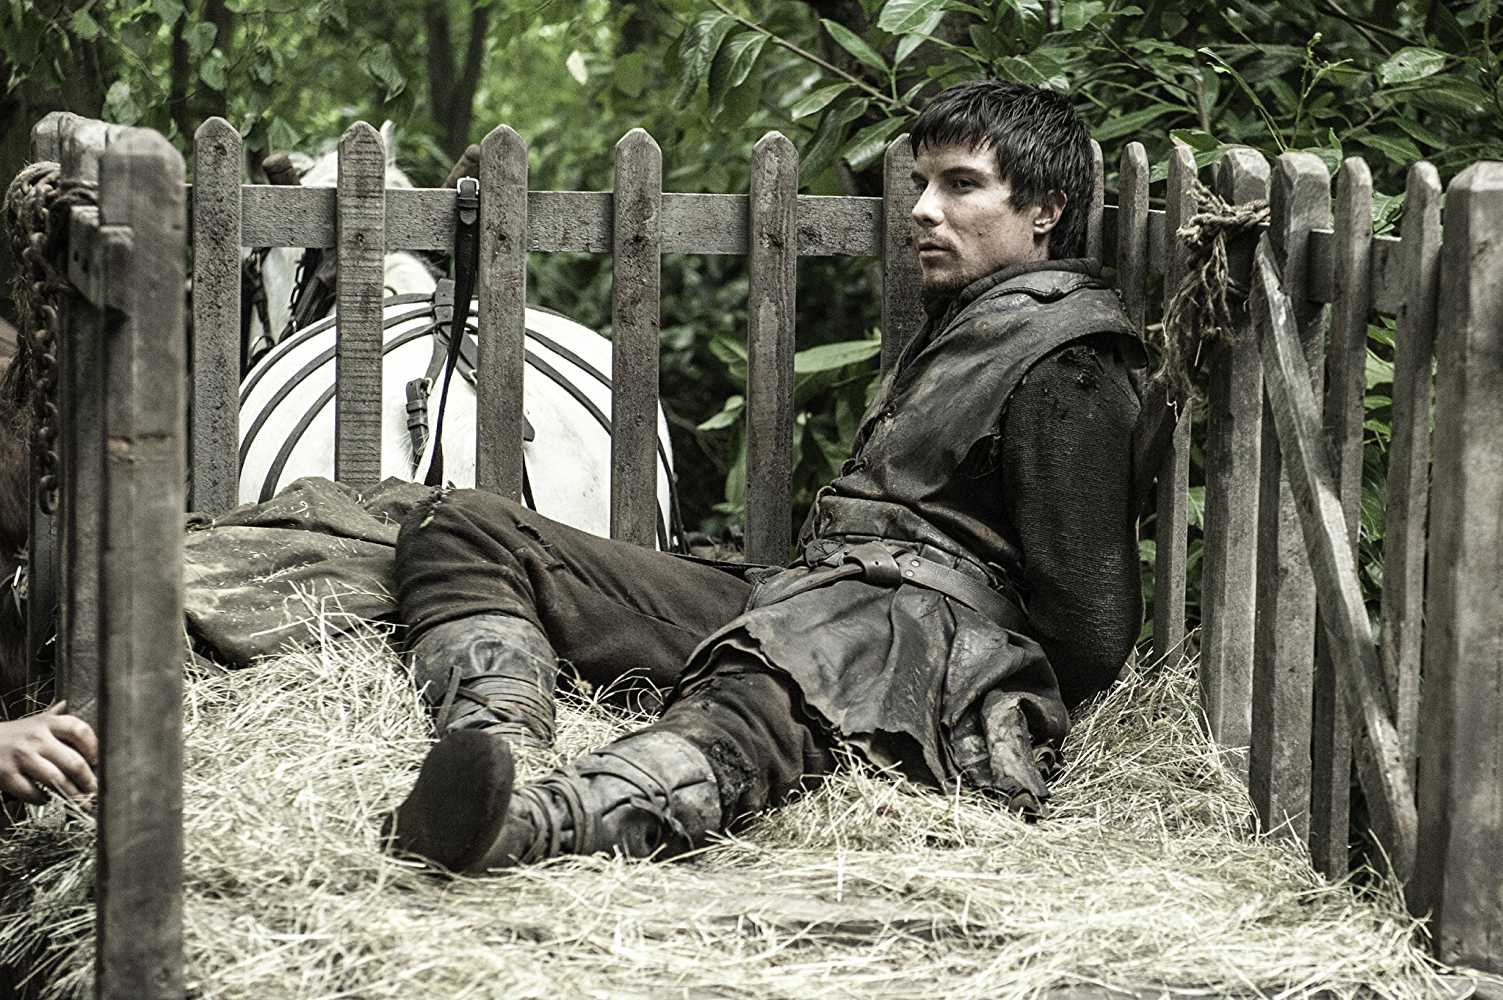 Gendry may just fulfill the 'Three-Headed Dragon' prophecy in 'Game of Thrones' (Source: IMDB)